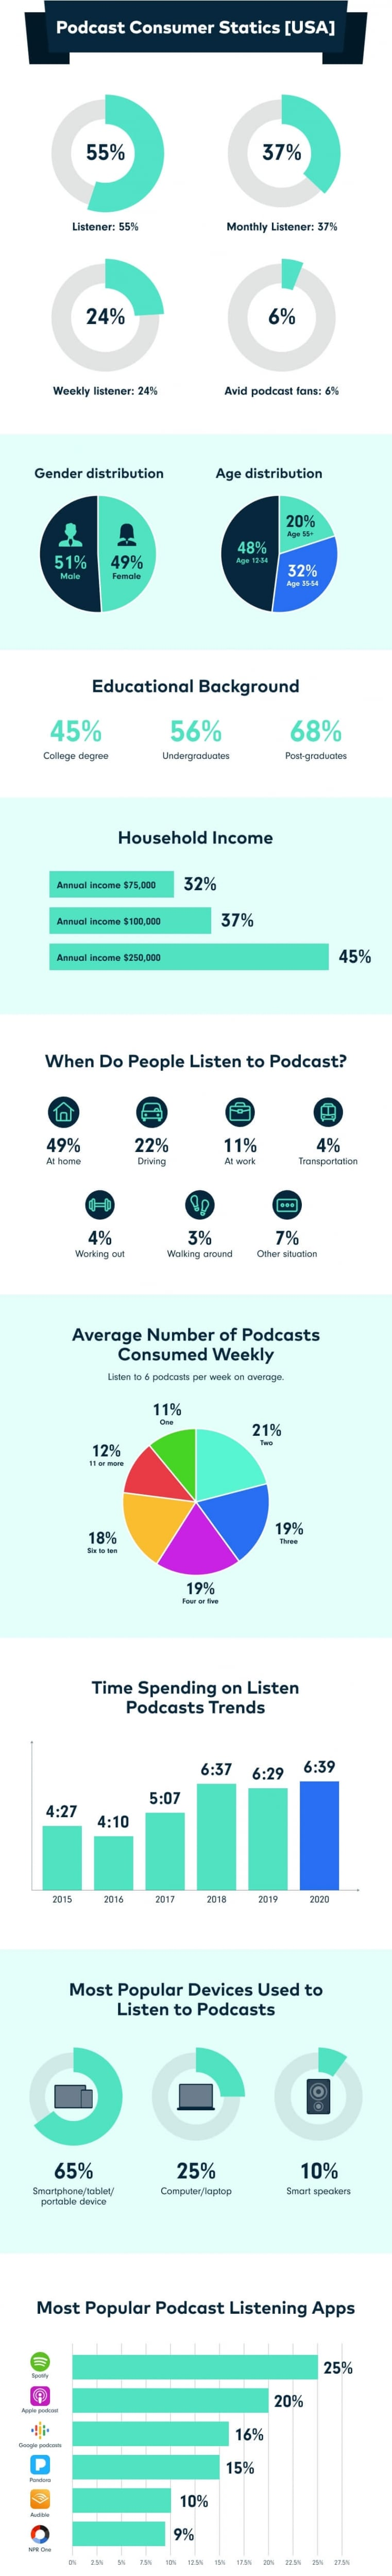 Podcast Stats and Marketing Insight infographic